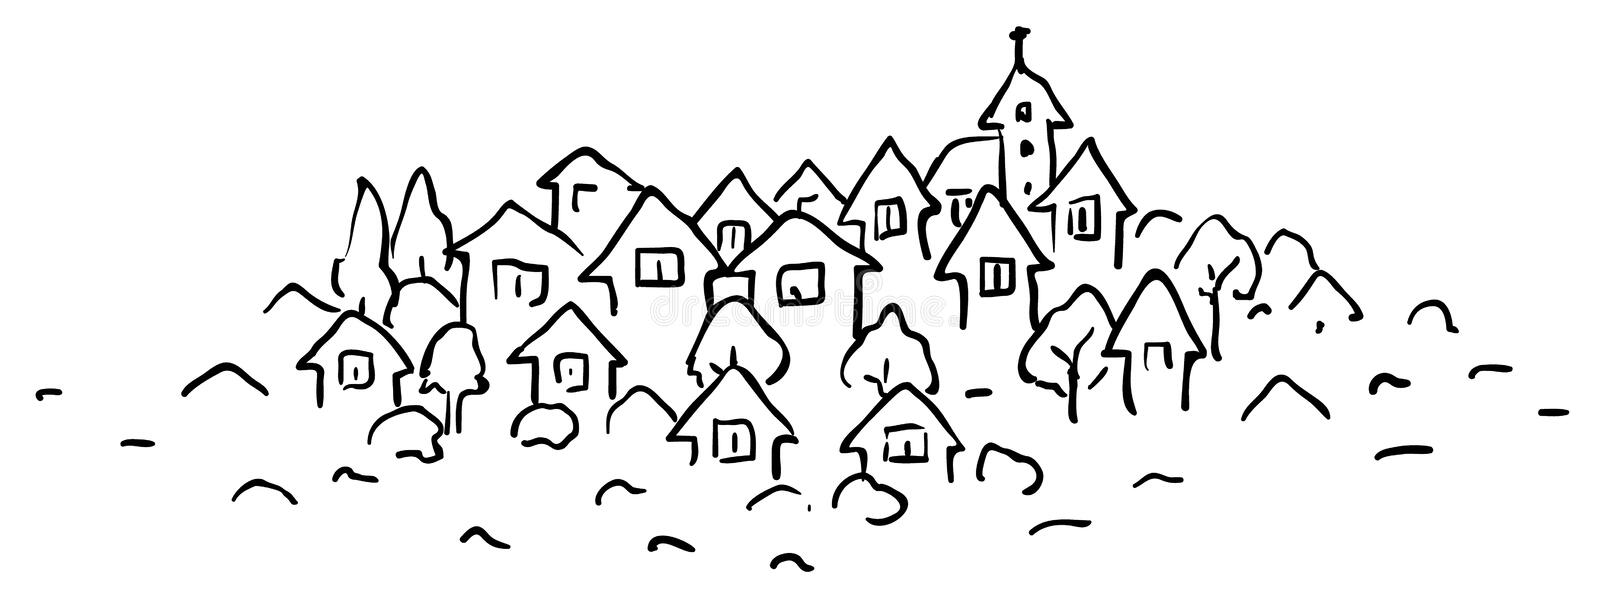 Small Town Line Drawing. Small town stylized cartoon line drawing, horizontal, vector illustration vector illustration